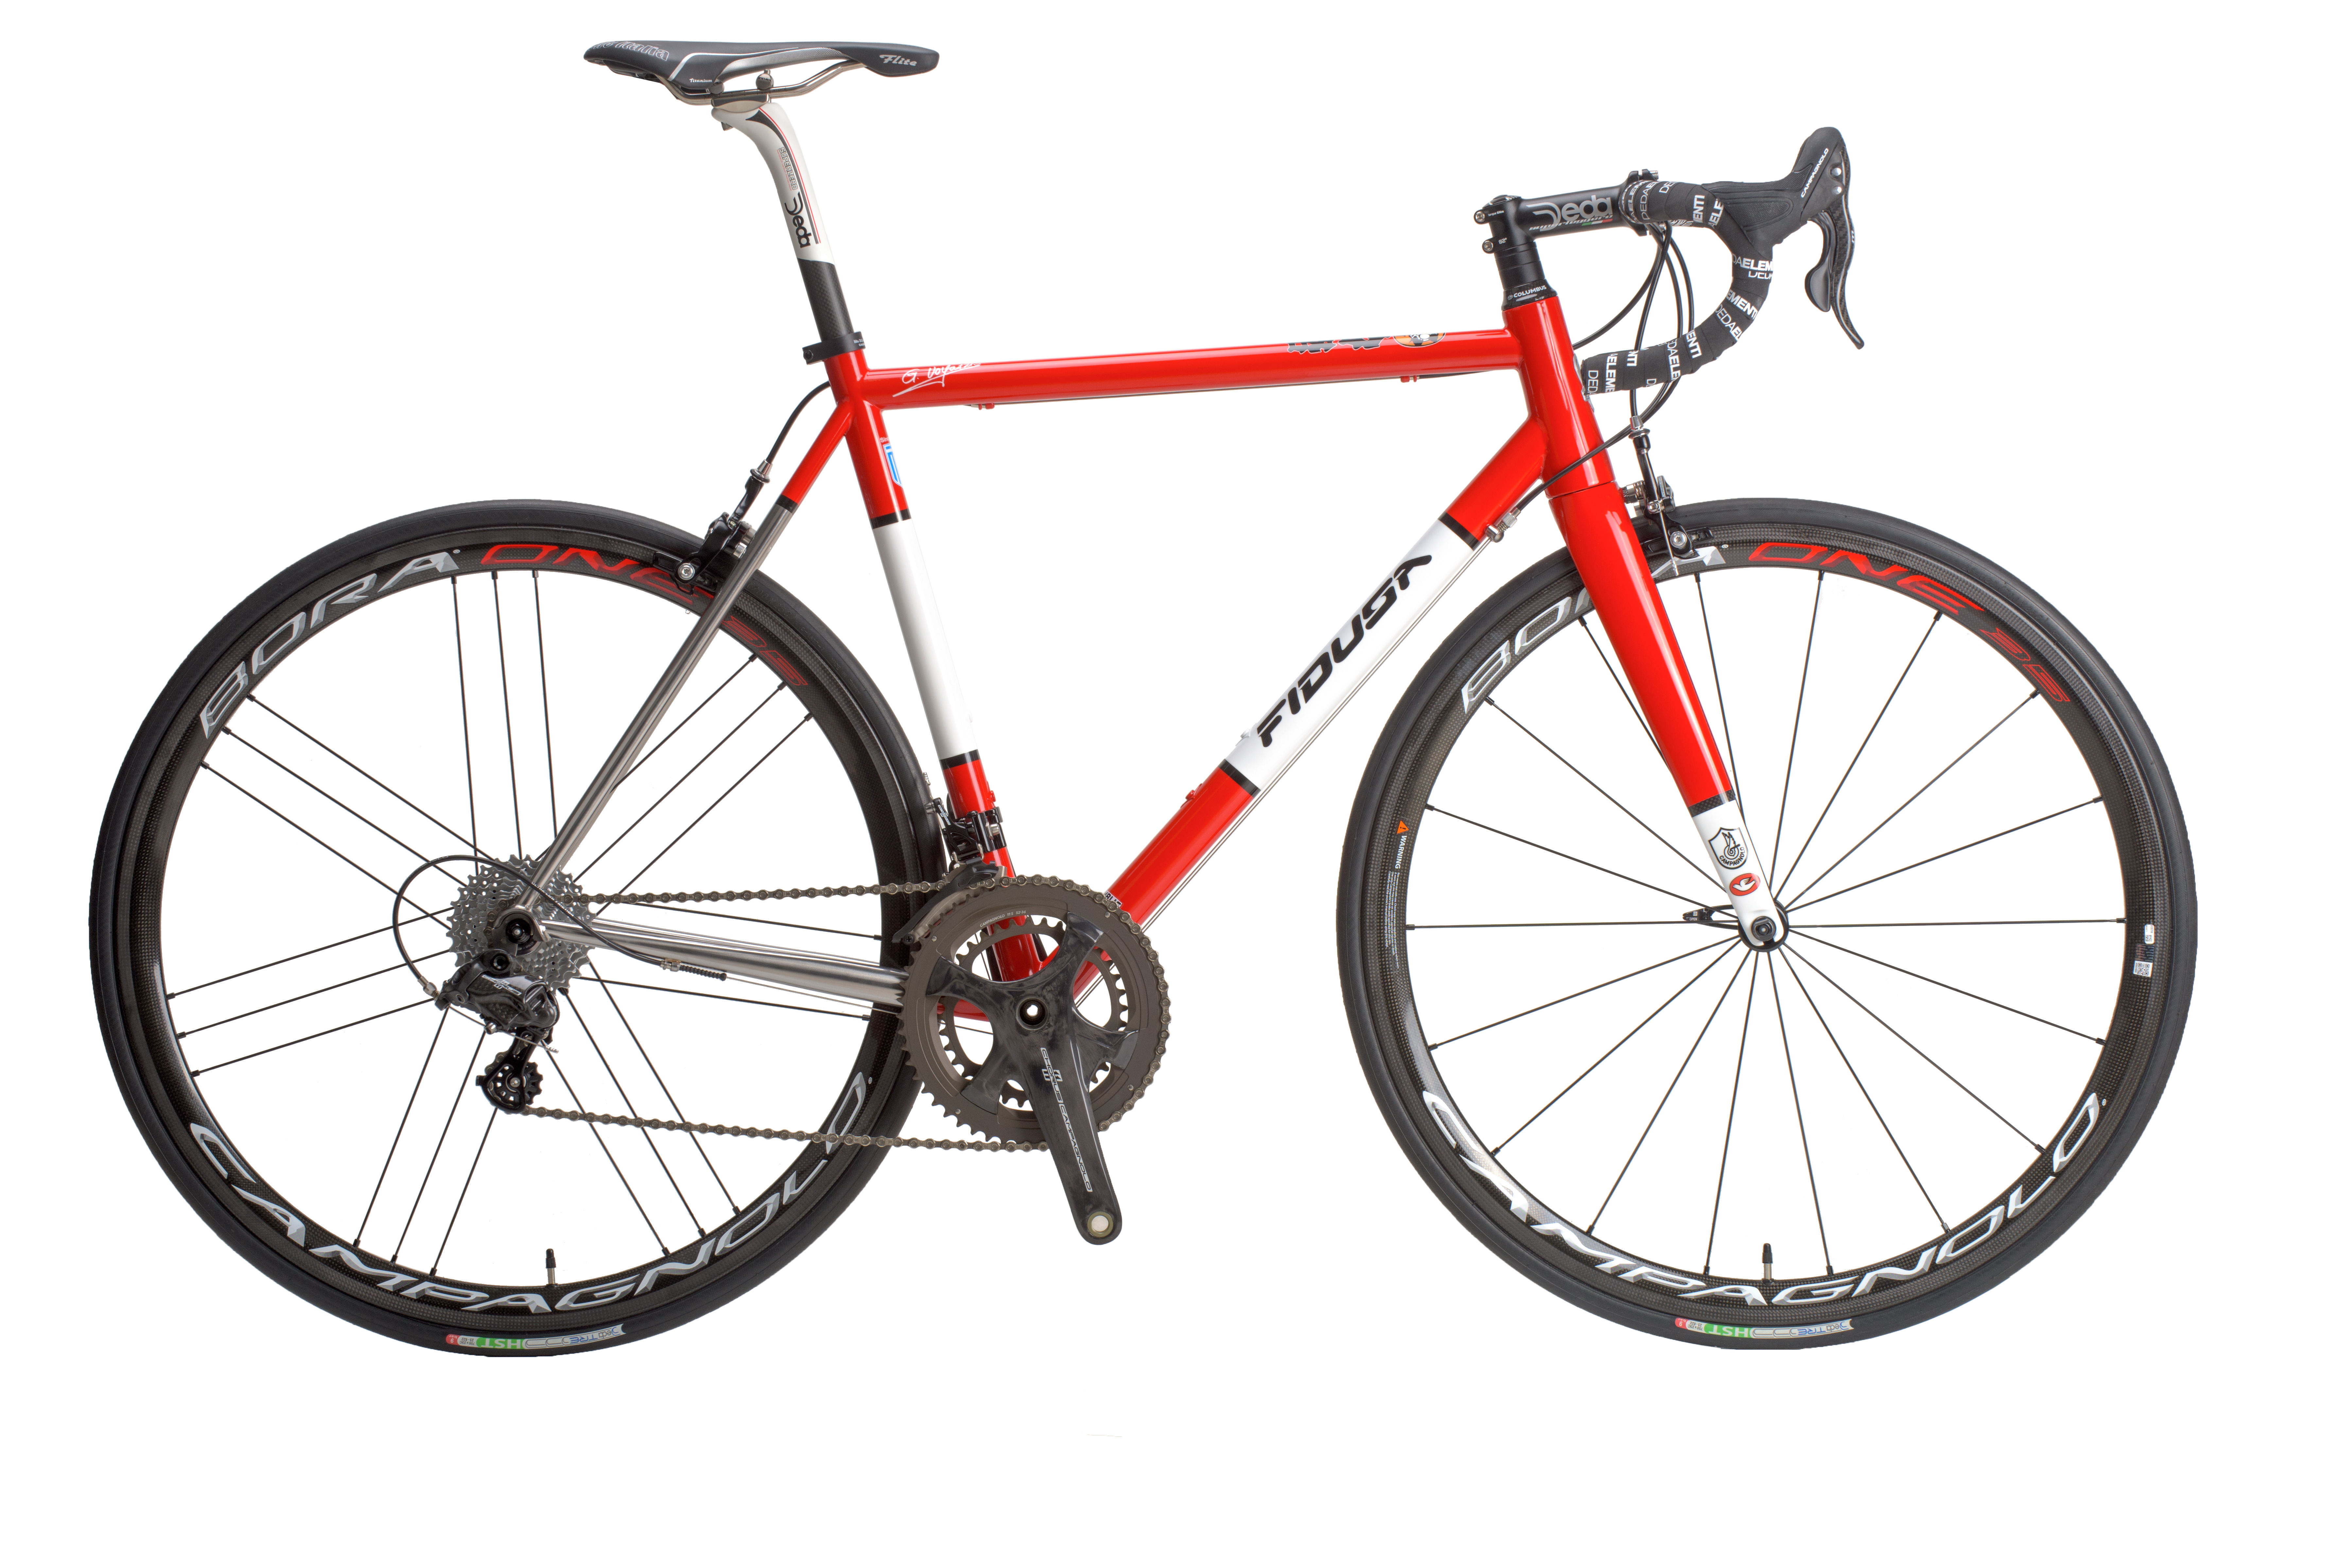 INOX-RED-LAND-clear Columbus XCR Stainless Steel Road Bike - Dimitris